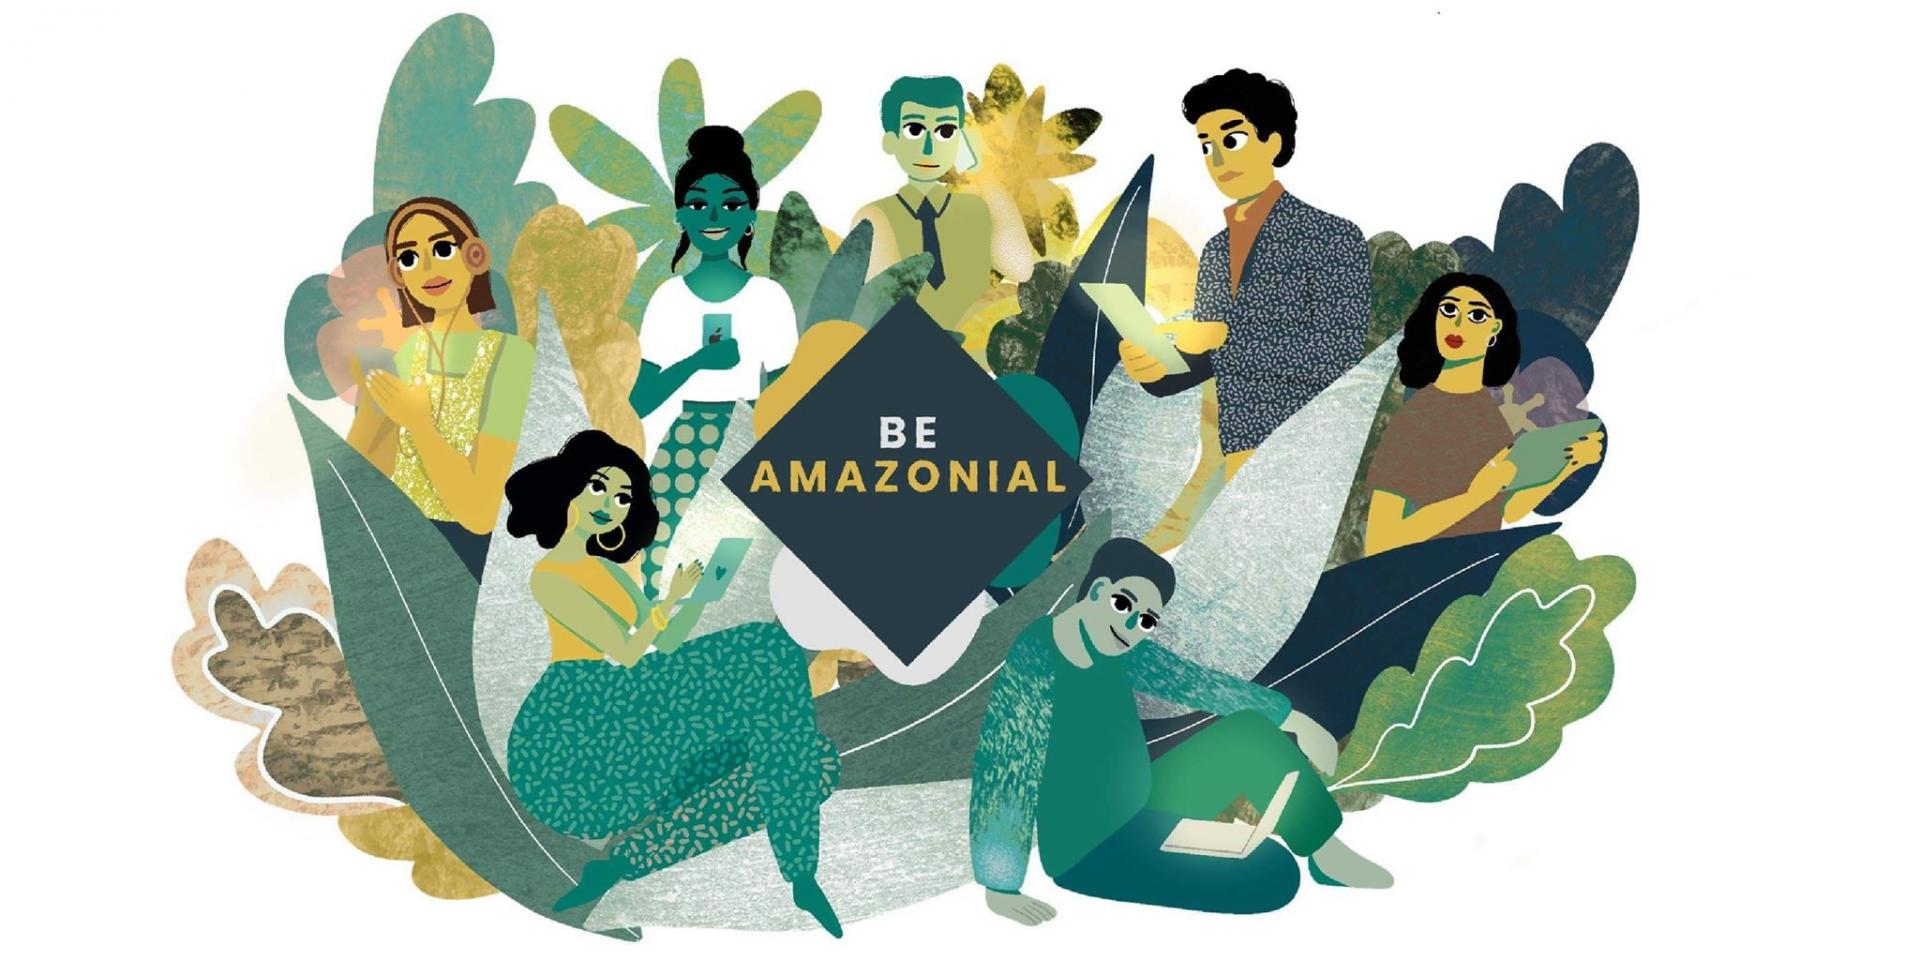 Collectif be amazonial